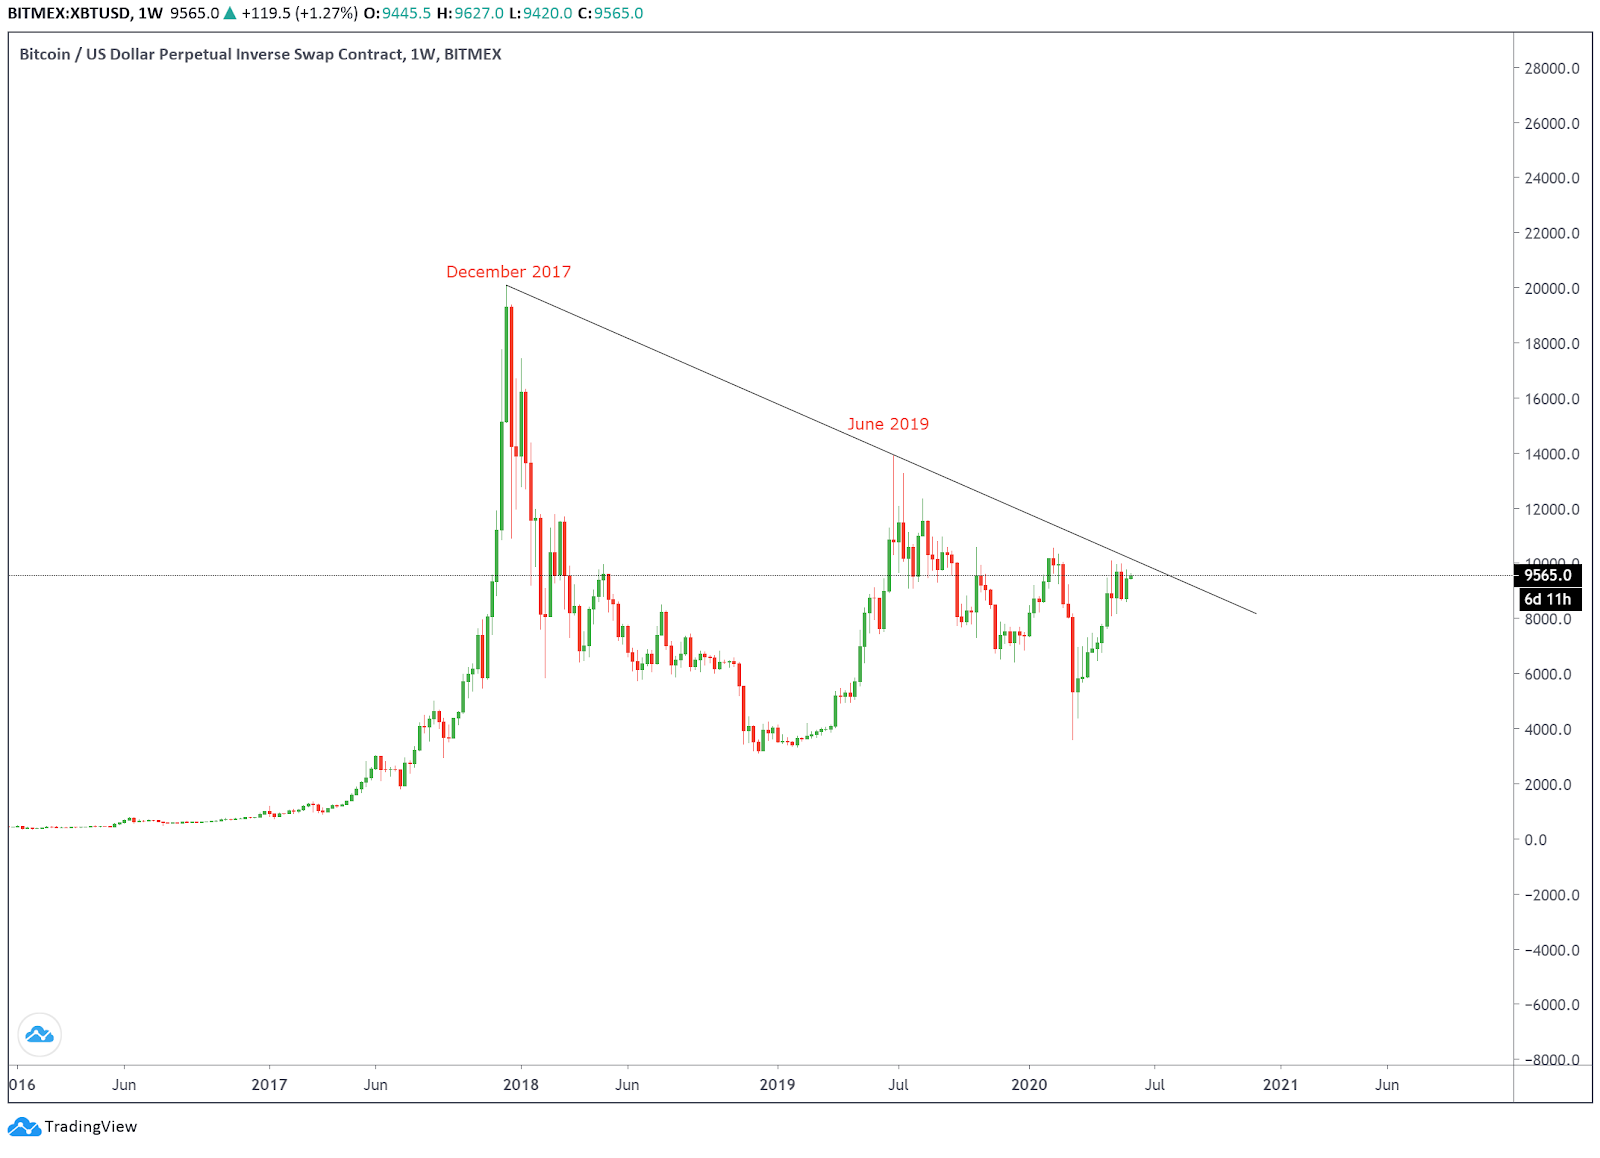 Bitcoin failed to break out of its multi-year cycle in the last three attempts